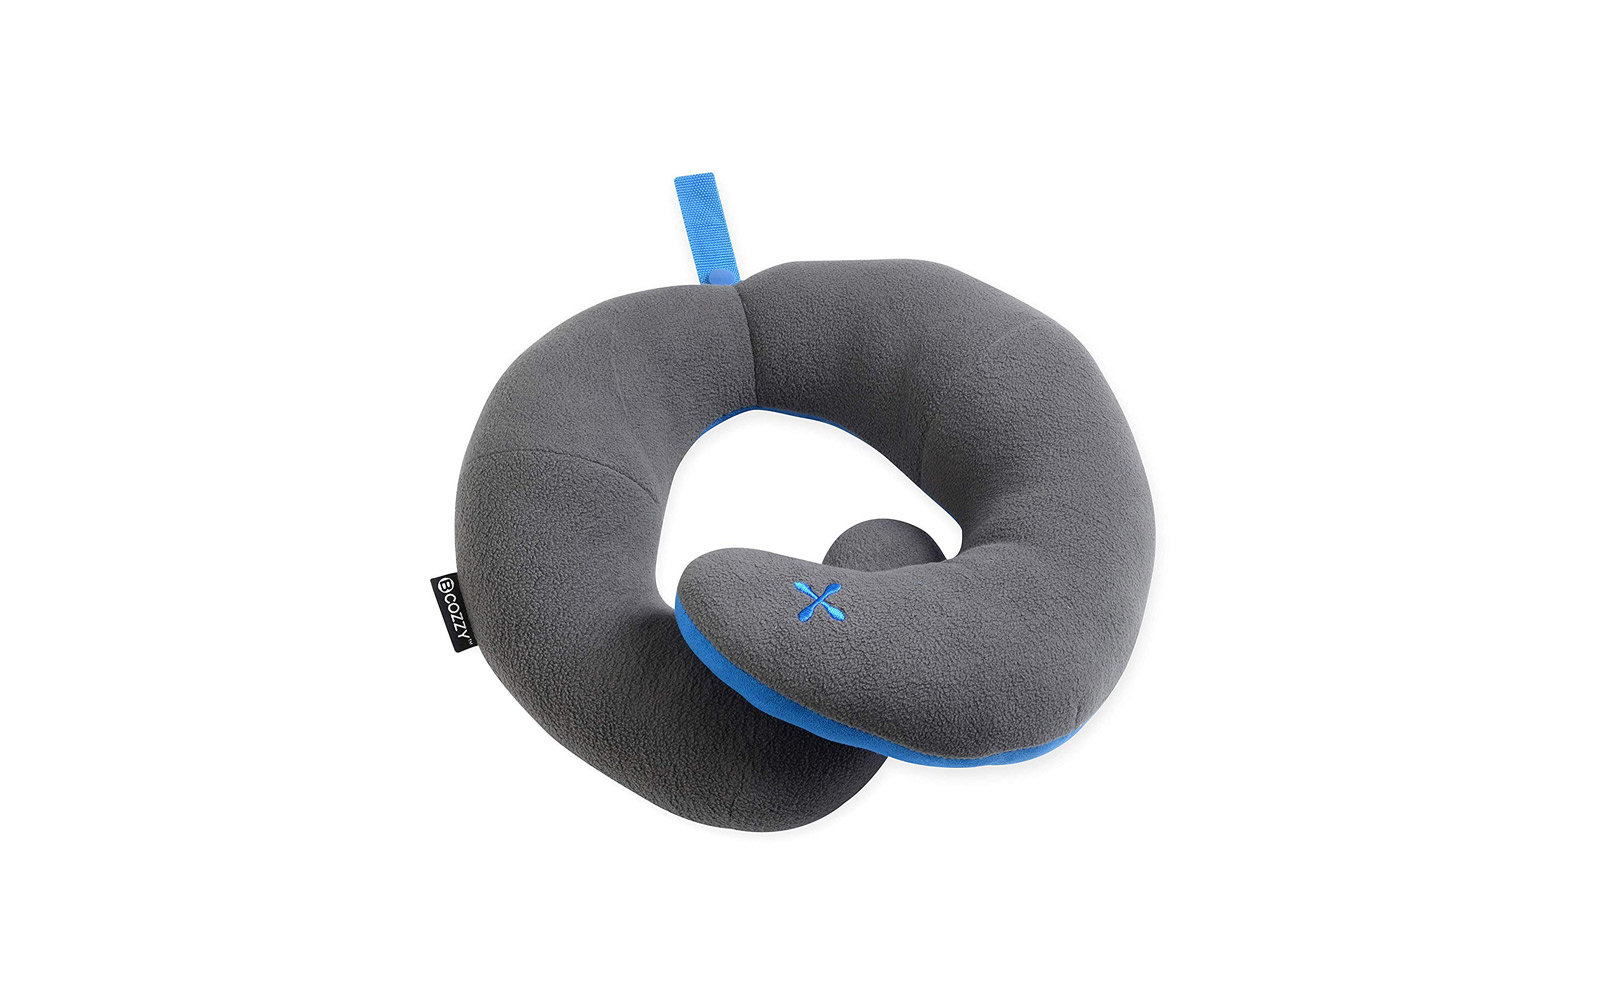 4. Bcozzy Chin Supporting Travel Pillow